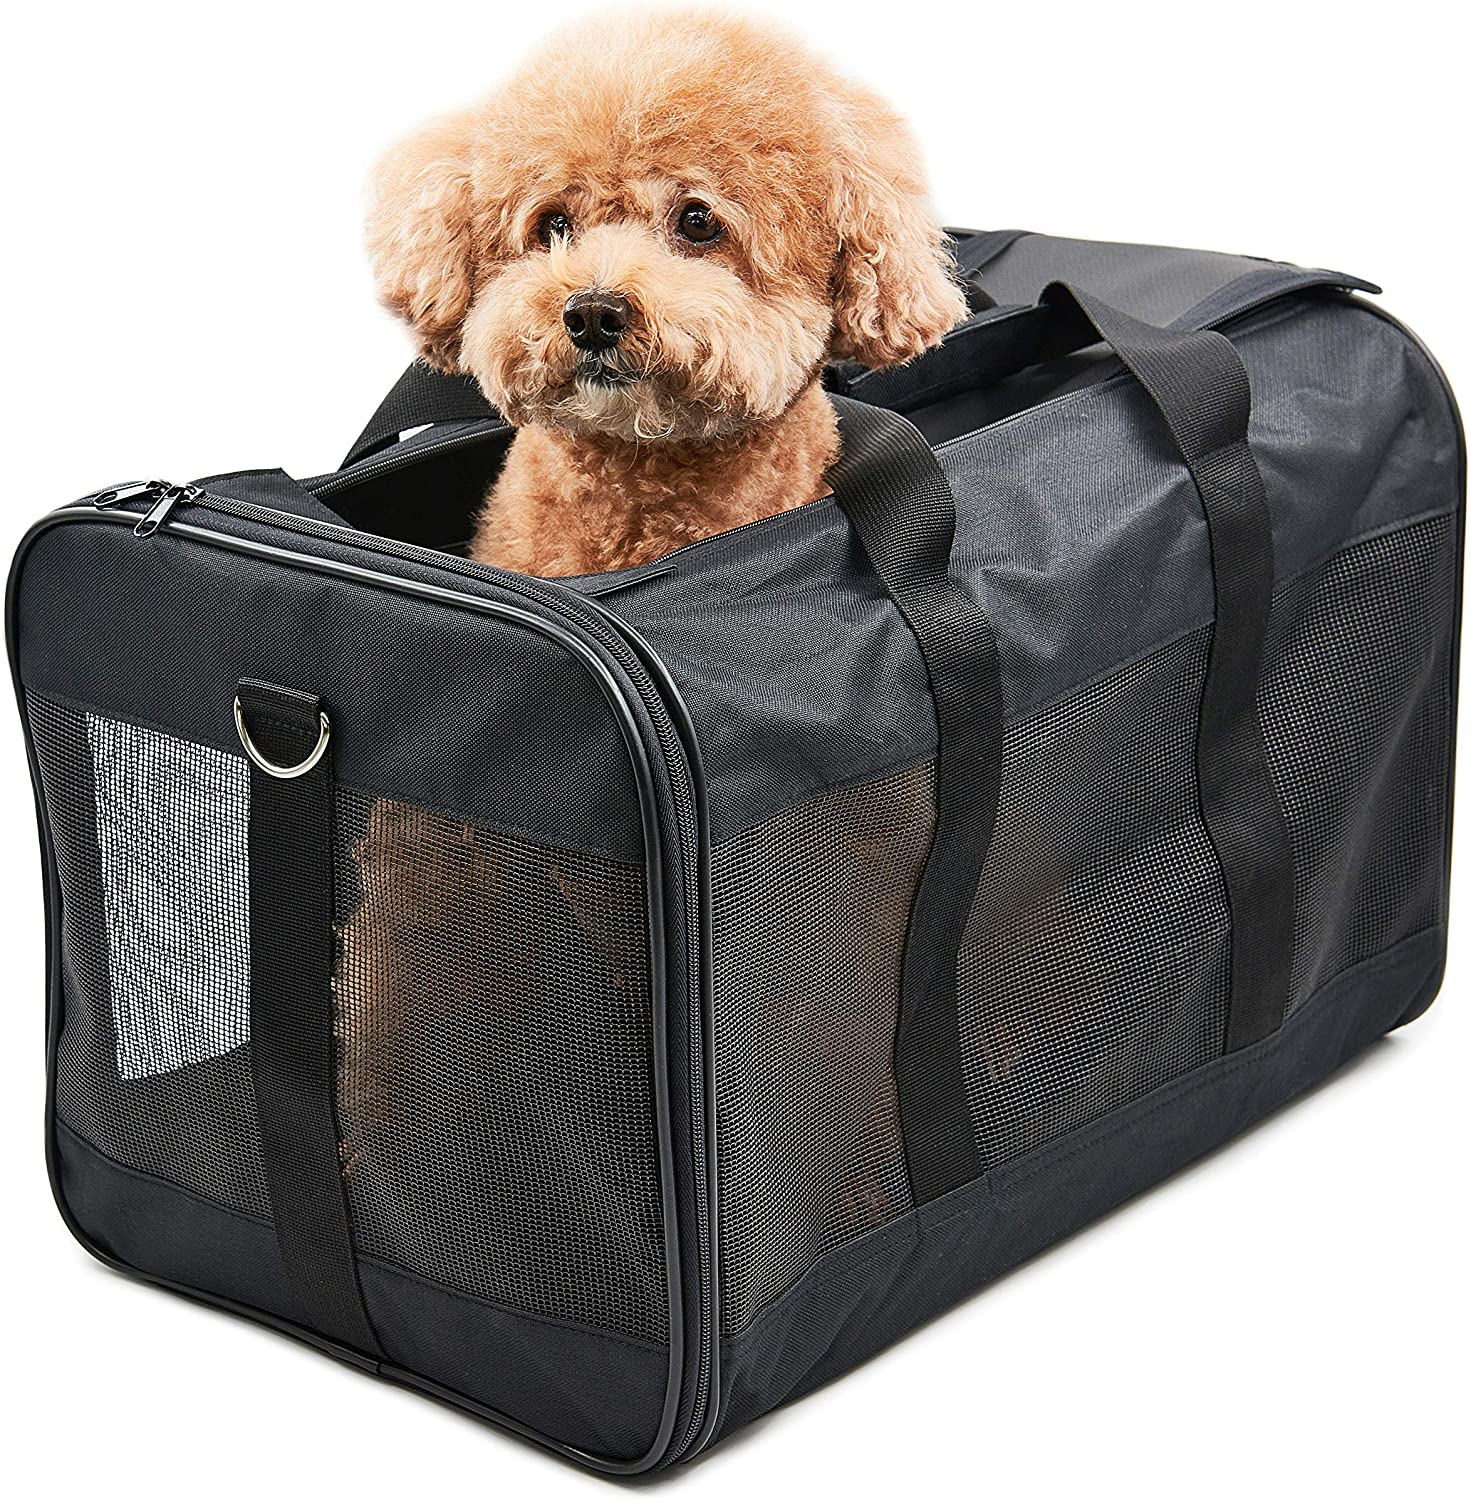 Amazon Com Scratchme Pet Travel Carrier Soft Sided Portable Bag For Cats And Small Dogs Collapsible Durable Airline Approved Travel Friendly Carry Your Pet With Safely And Comfortably Black Pet Supplies